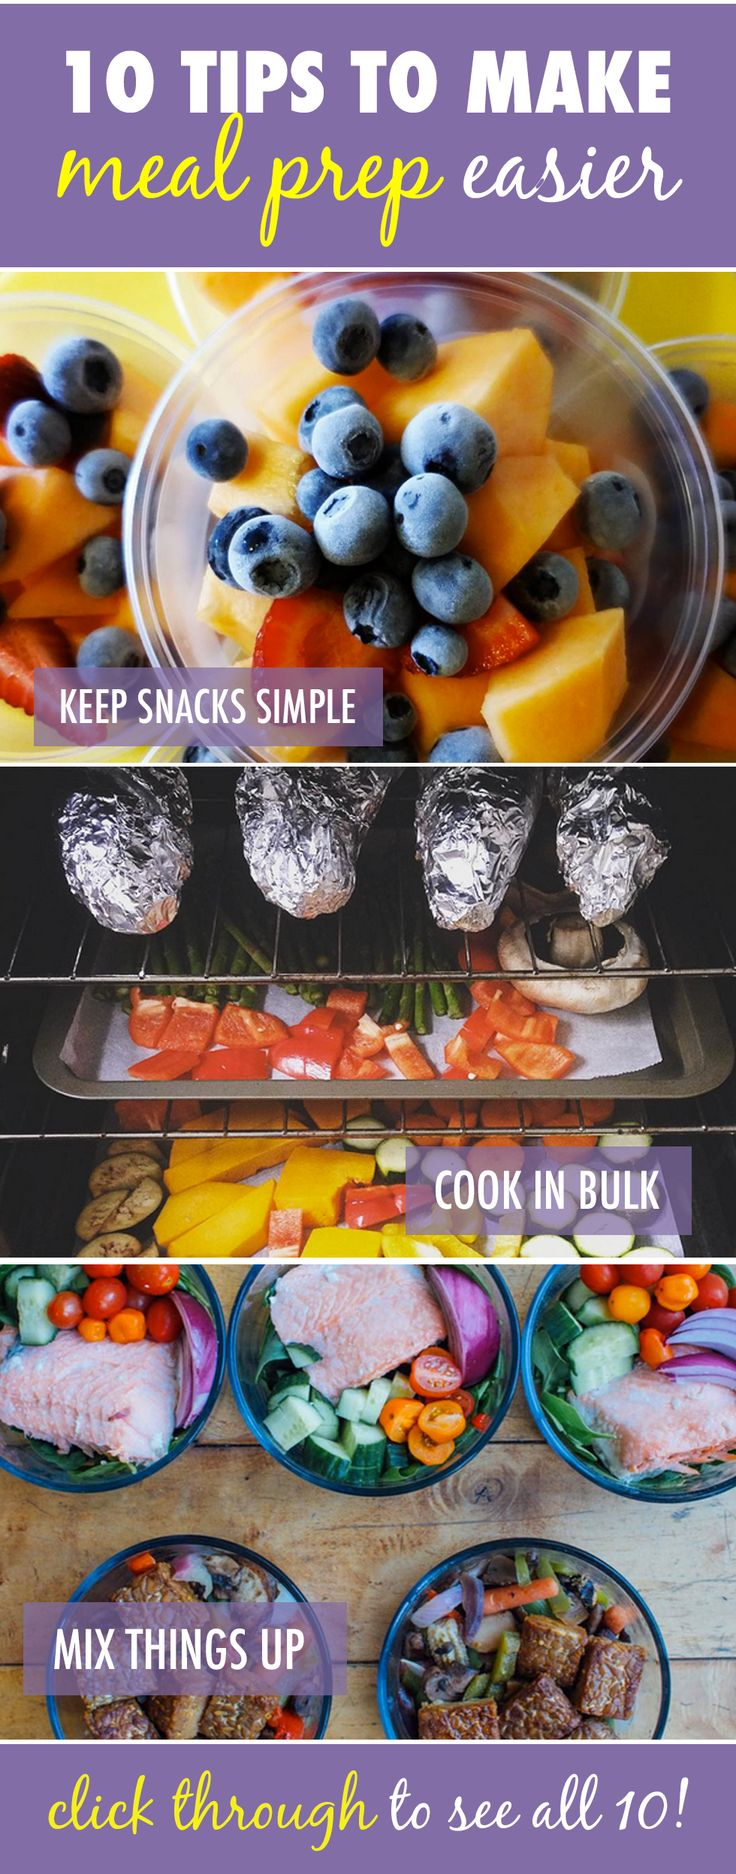 It takes practice to get the hang of planning and prepping your meals. Here are 10 tips to make ‪#‎MealPrepMonday‬ easier: